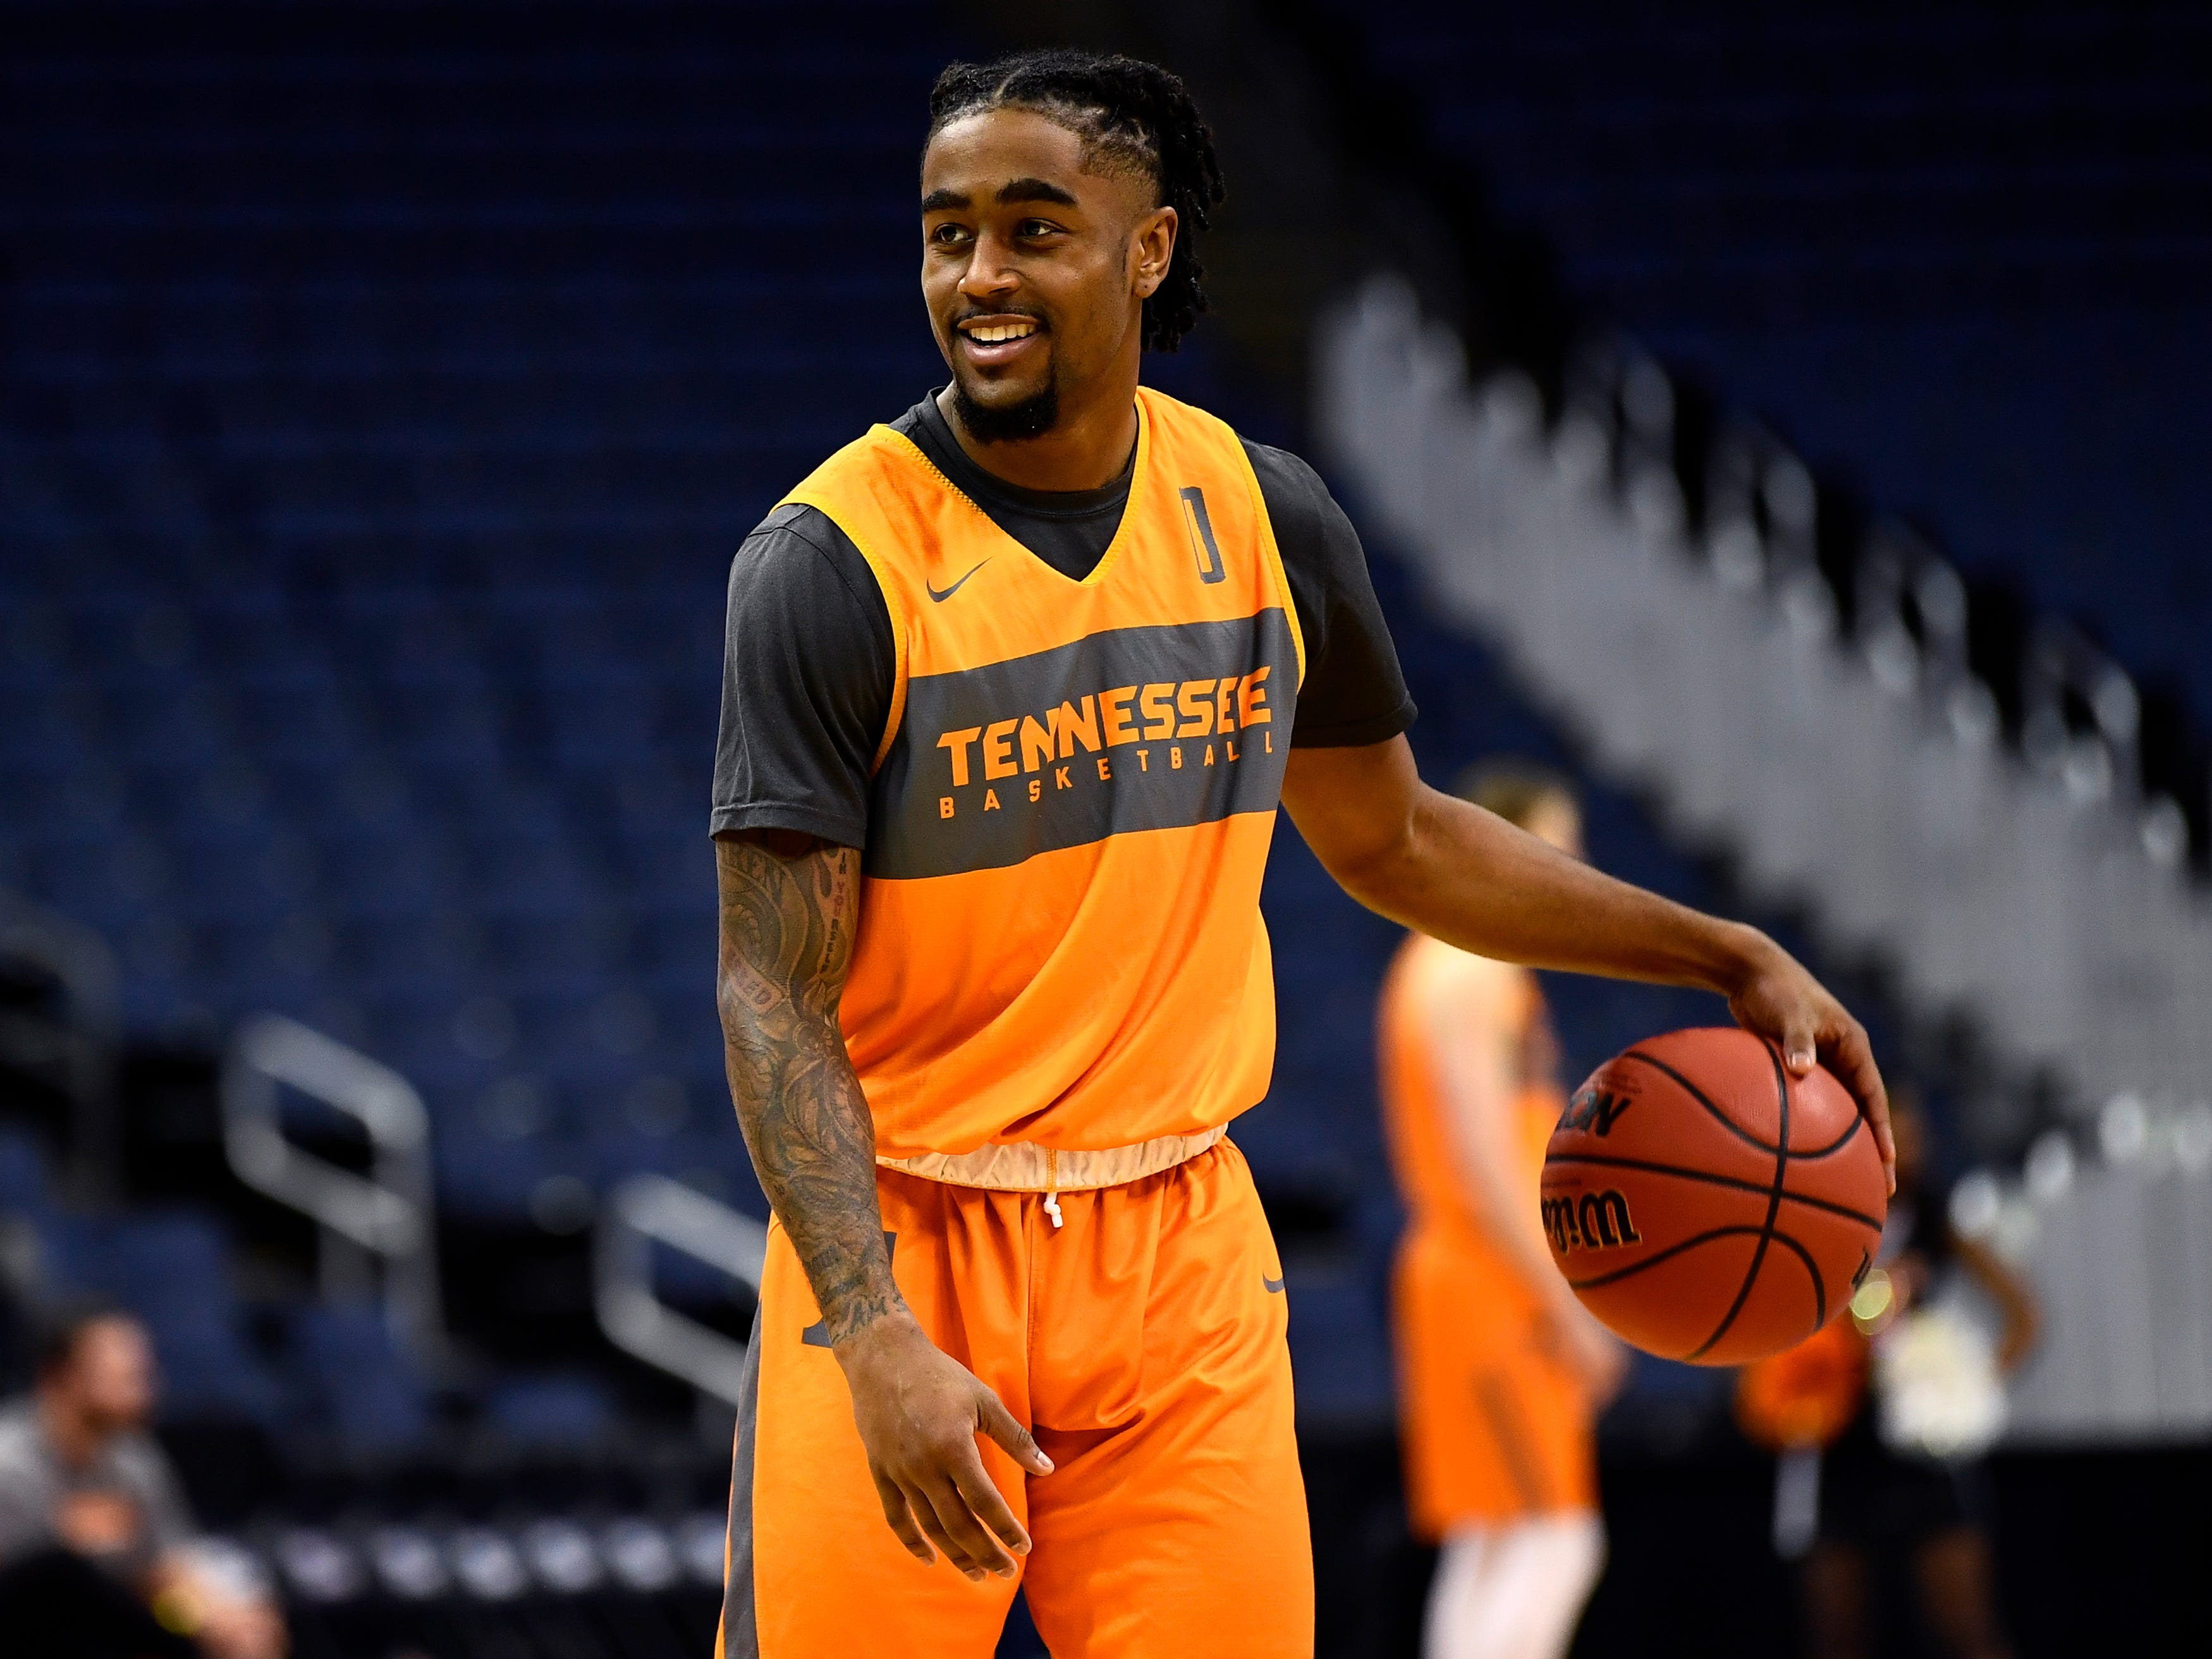 Tennessee guard Jordan Bone (0) during Tennessee's practice on Thursday, March 21, 2019, before their first round NCAA Tournament game against Colgate at Nationwide Arena in Columbus, Ohio.